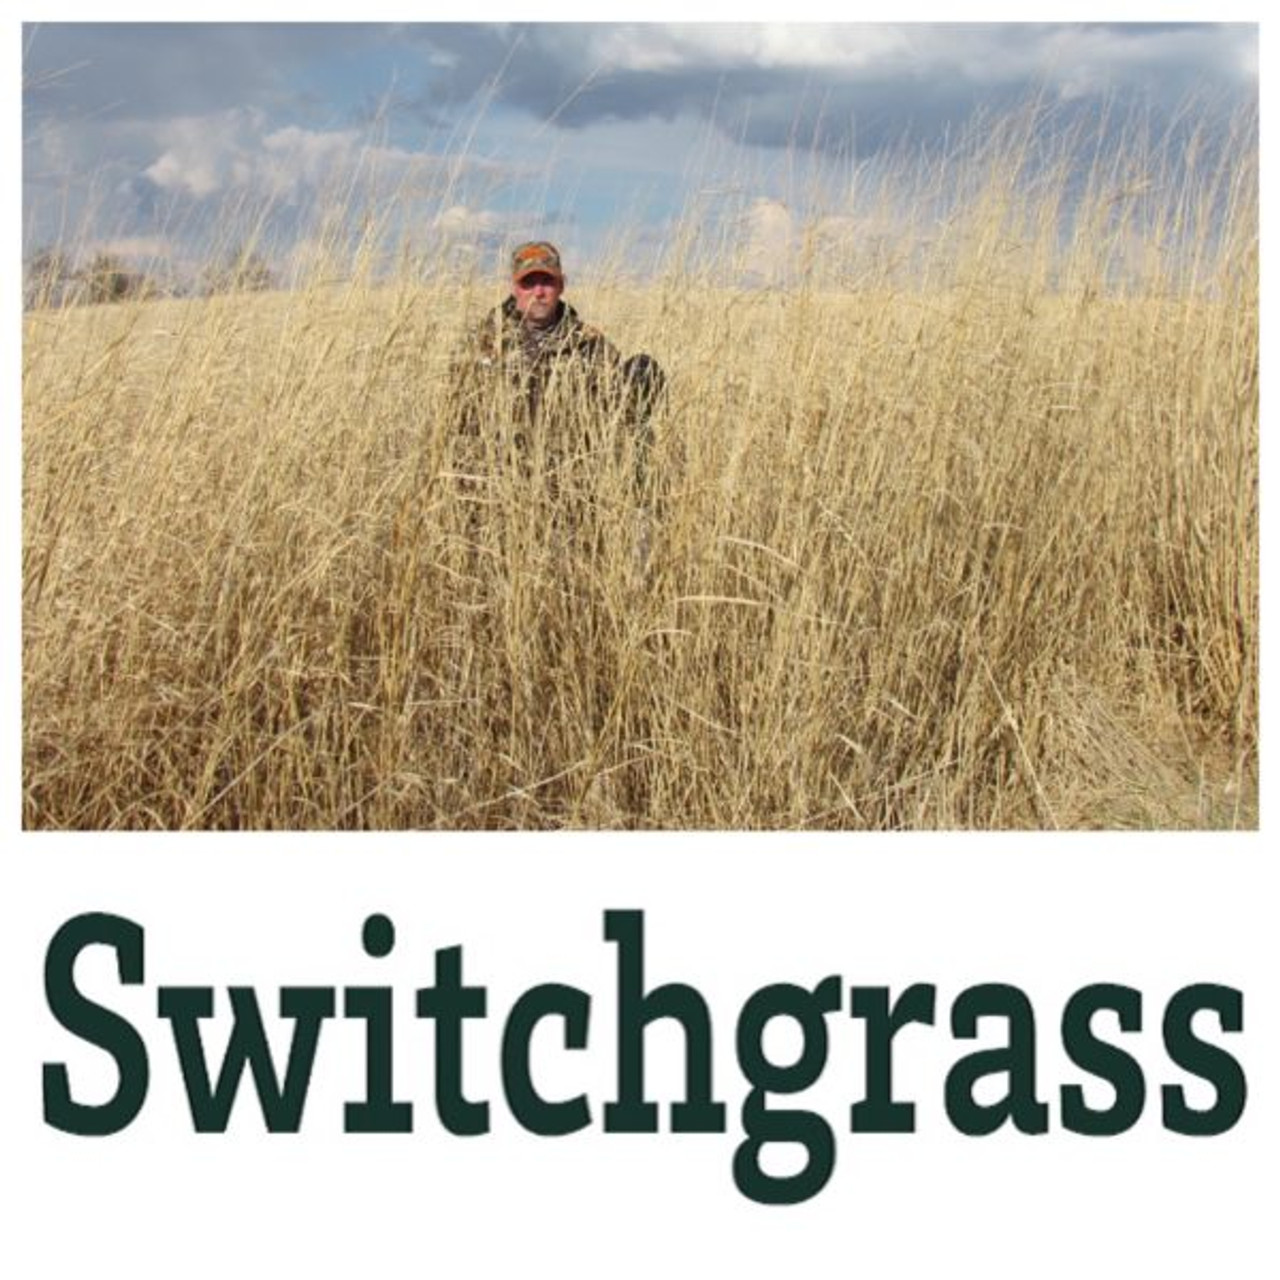 Real World Wildlife Products - Switchgrass for deer